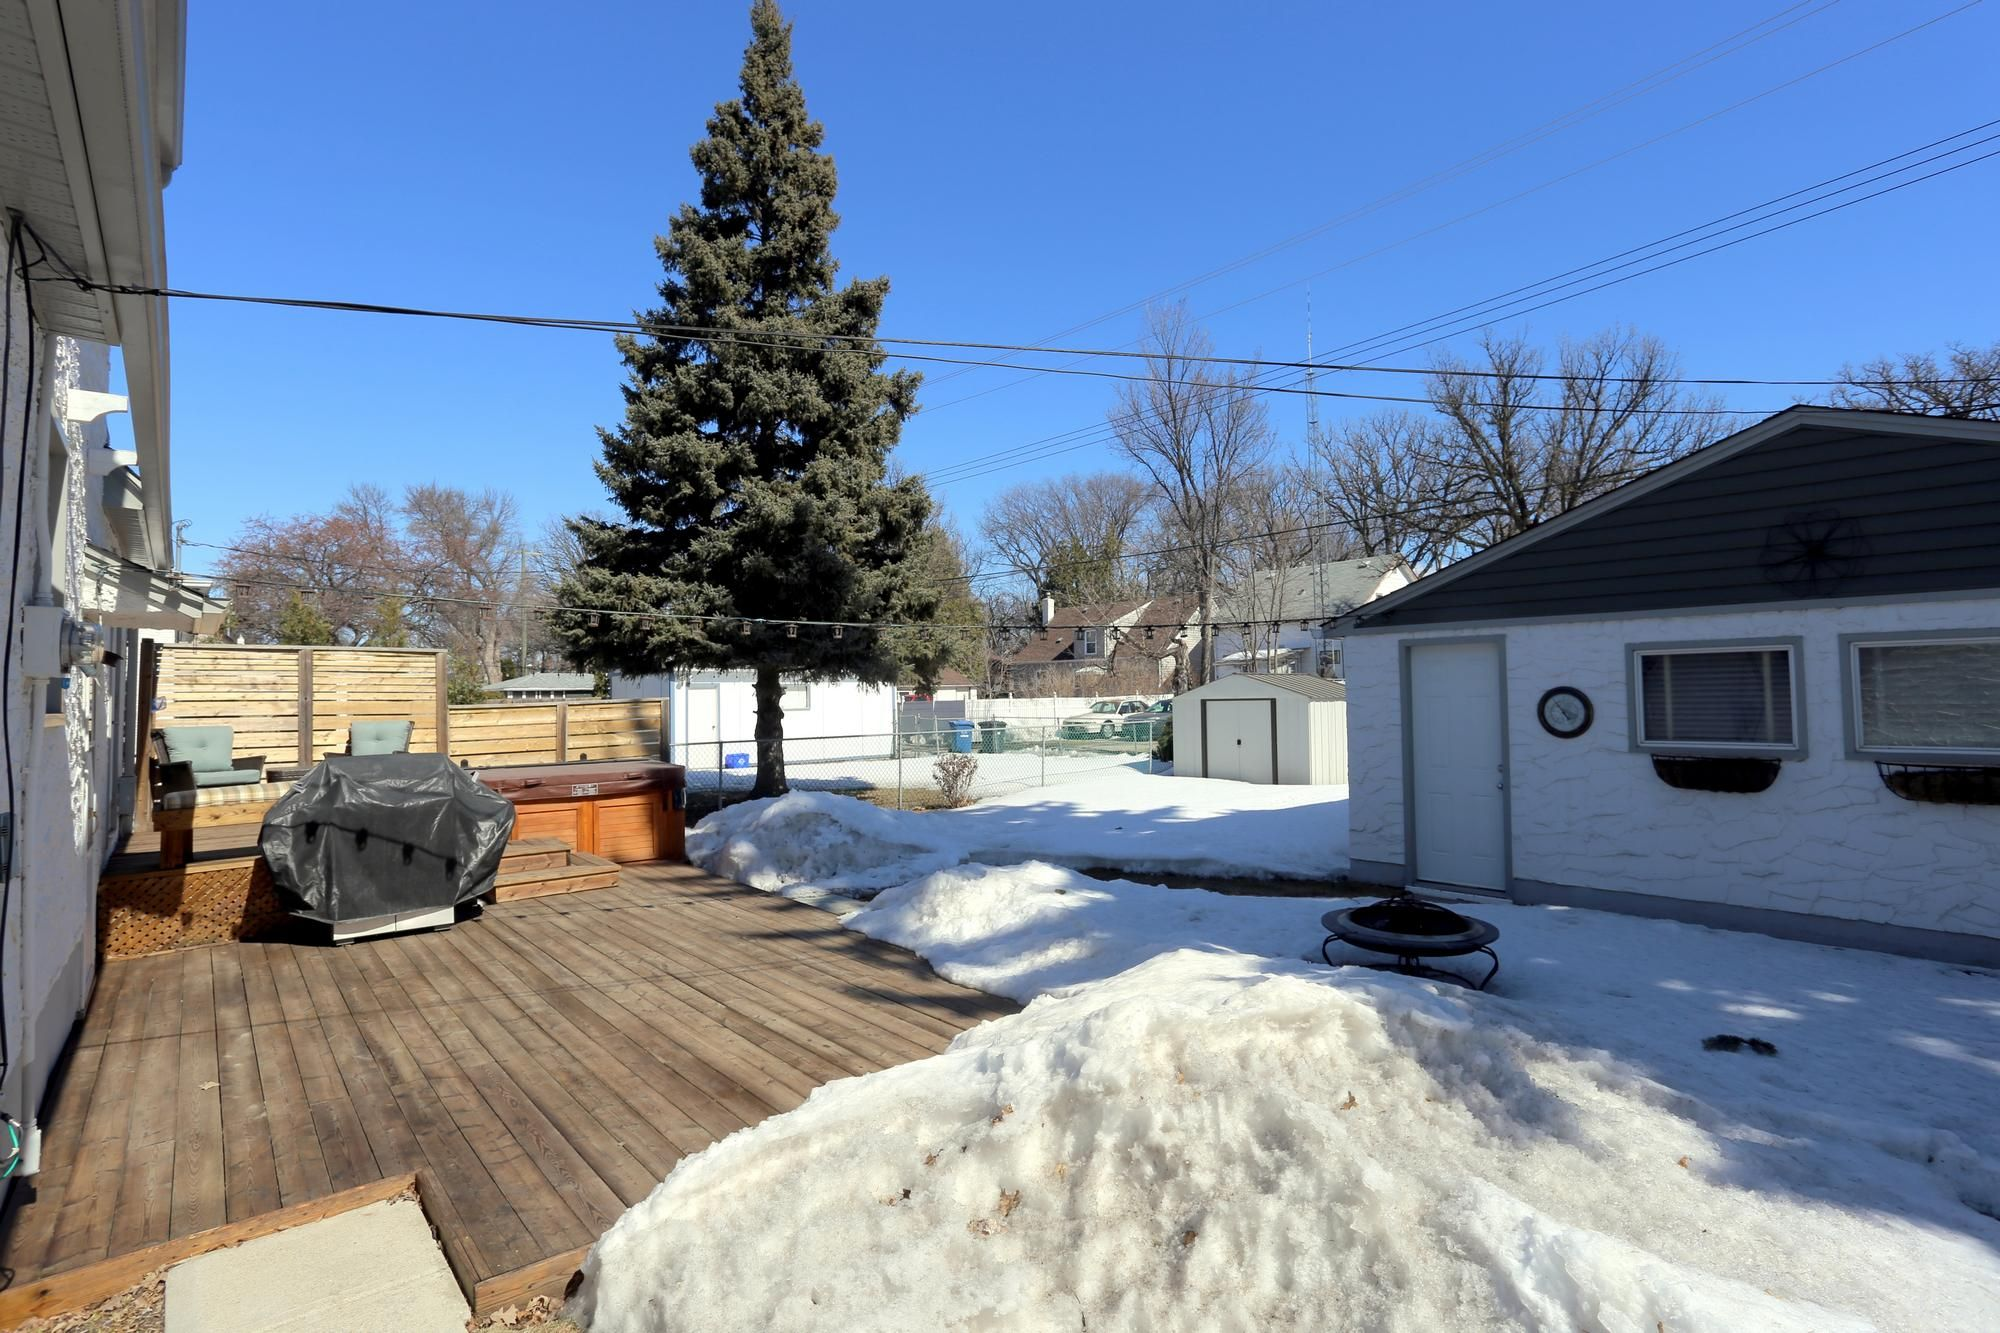 Photo 31: Photos: 349 Guildford Street in Winnipeg: St James Single Family Detached for sale (5E)  : MLS®# 1807654